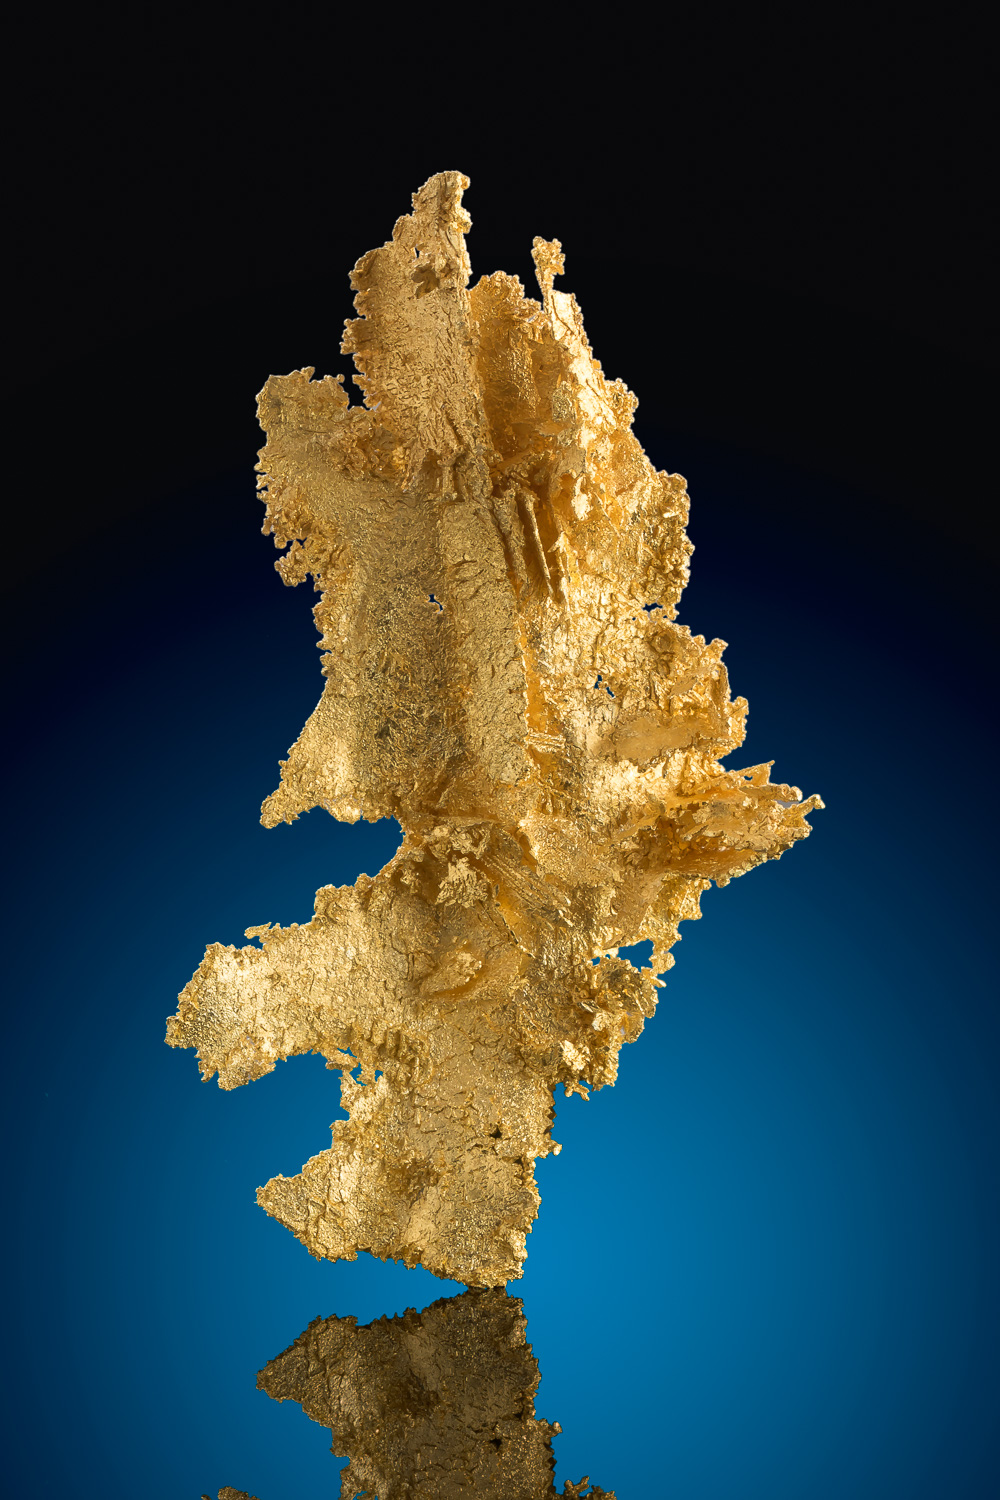 Large Well Crystalized Gold Specimen from Round Mountain